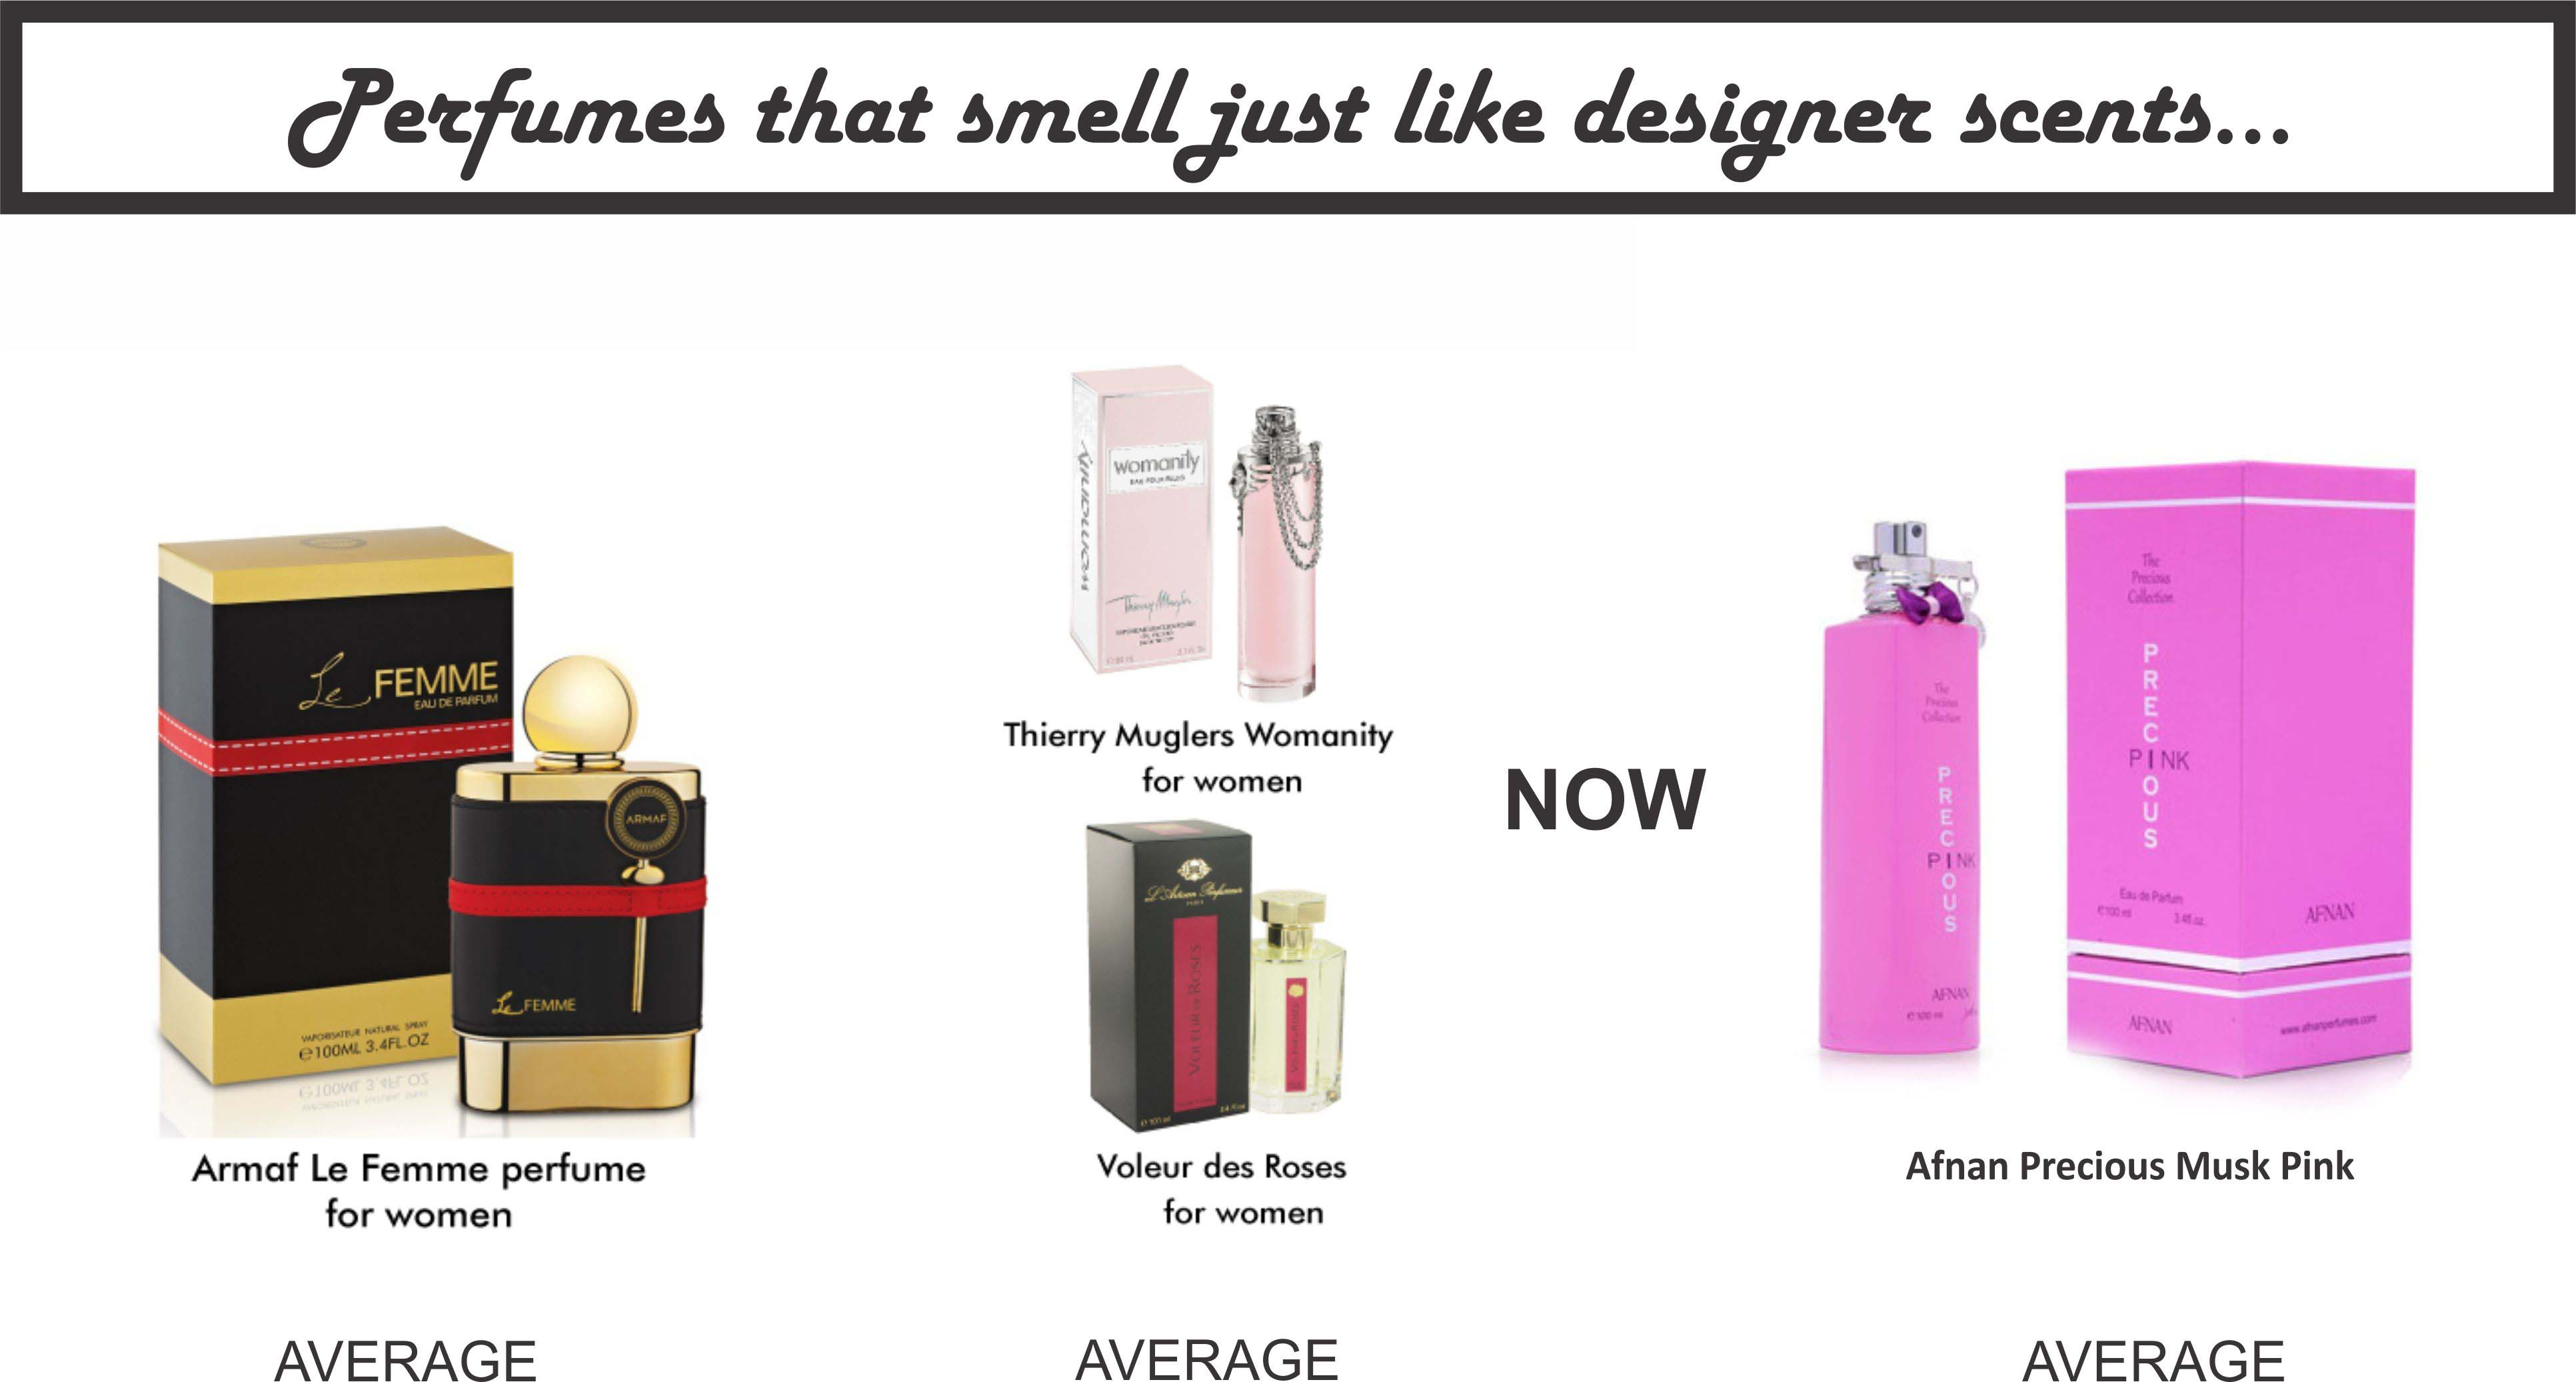 armaf-le-femme-perfume-women-thierry-muglers-womanity-voleur-des-roses-women-afnan-precious-pink-perfume-for-women